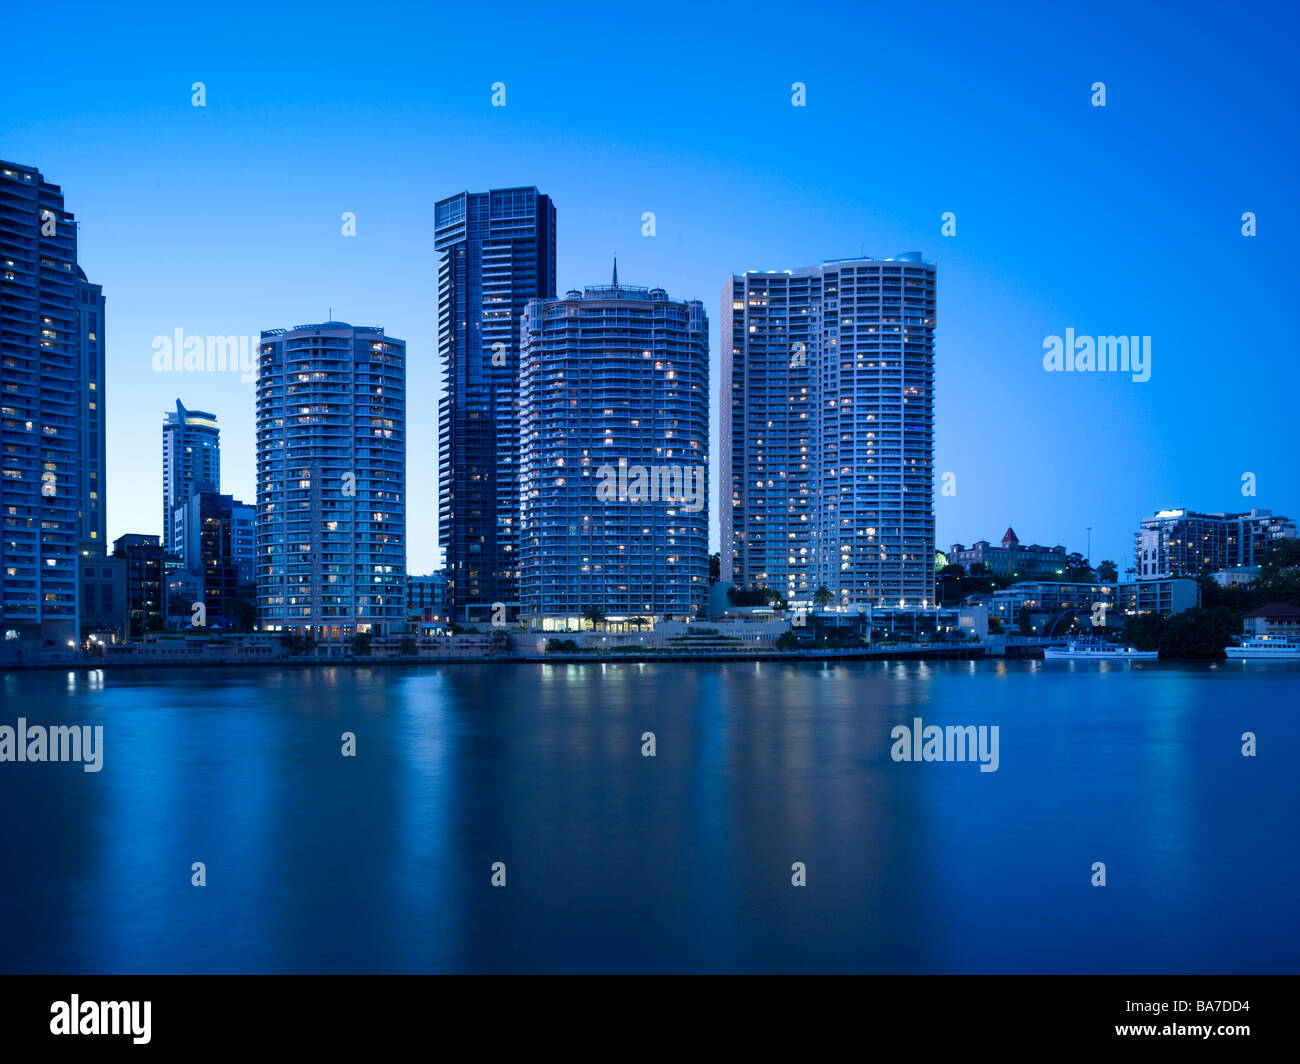 Brisbane City Apartments at night - Stock Image